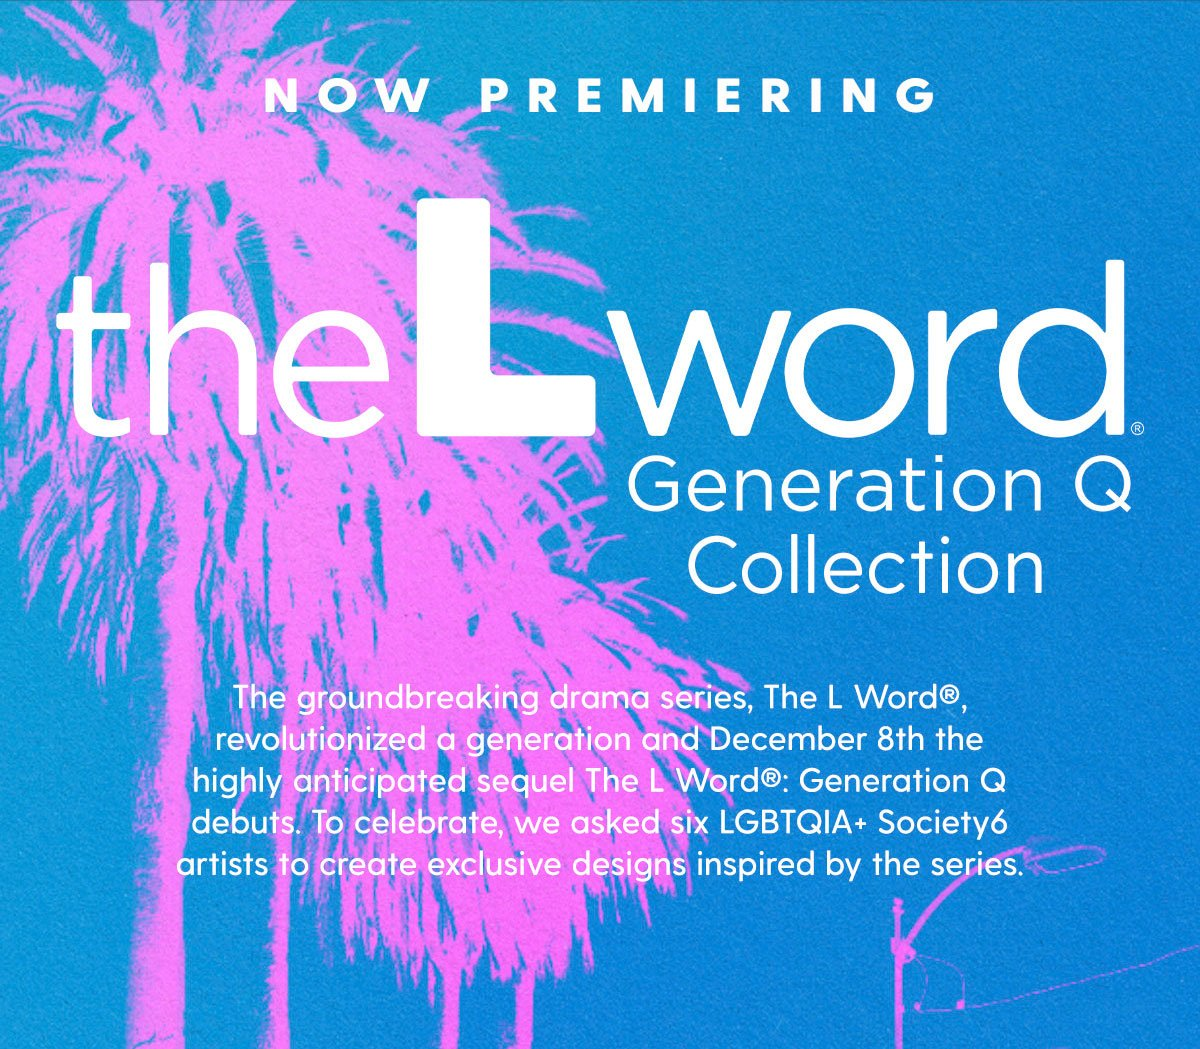 Now Premiering The L Word®️ Collection. The groundbreaking drama series, The L Word®️, revolutionized a generation and December 8th the highly anticipated sequel The L Word®️: Generation Q debuts. To celebrate, we asked six LGBTQIA+ Society6 artists to create exclusive designs inspired by the series.